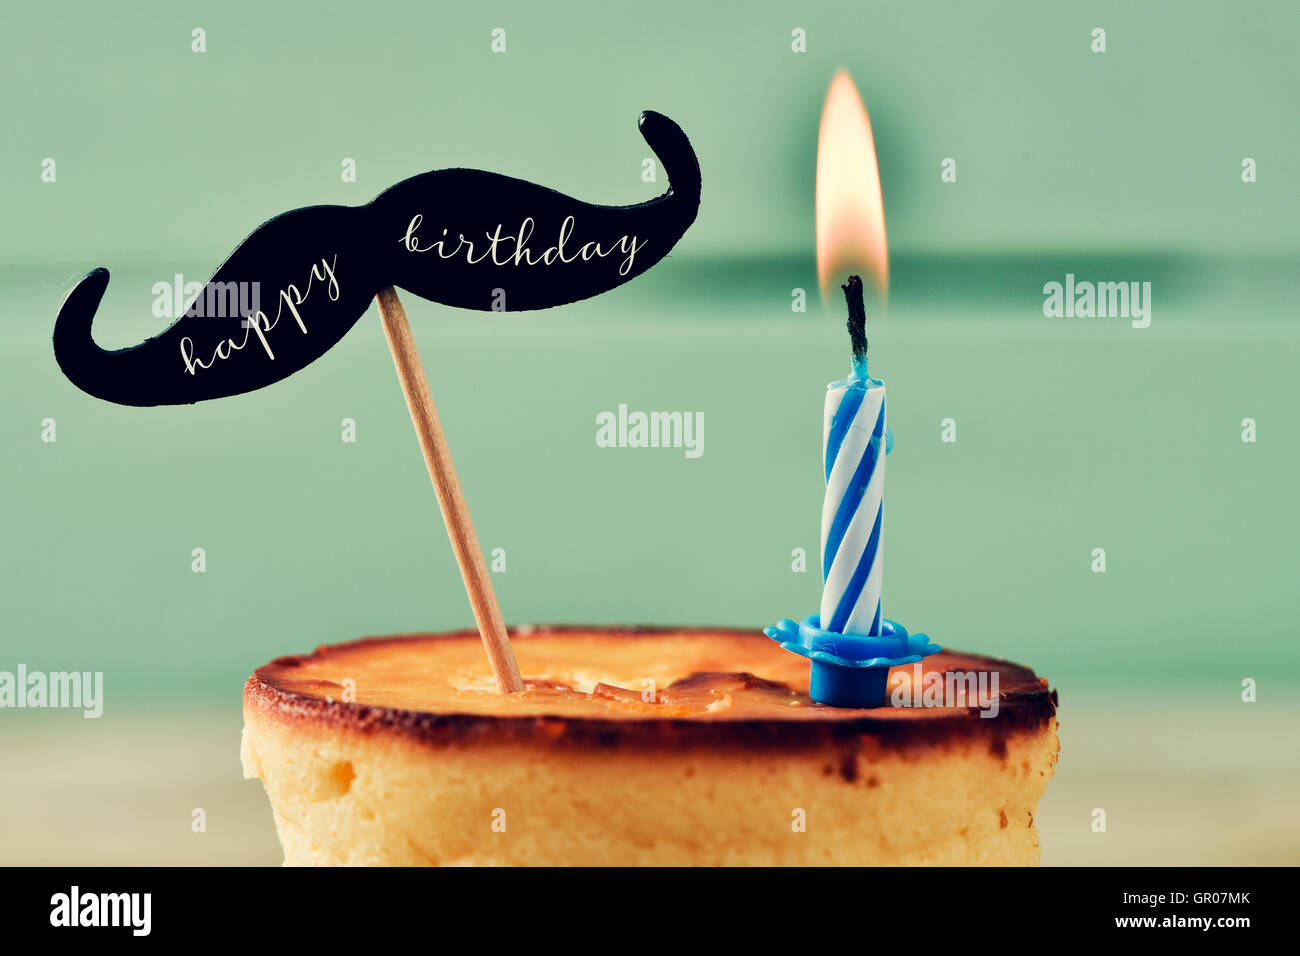 closeup of a cheesecake topped with a moustache with the text happy birthday written in it and attached to a stick, - Stock Image